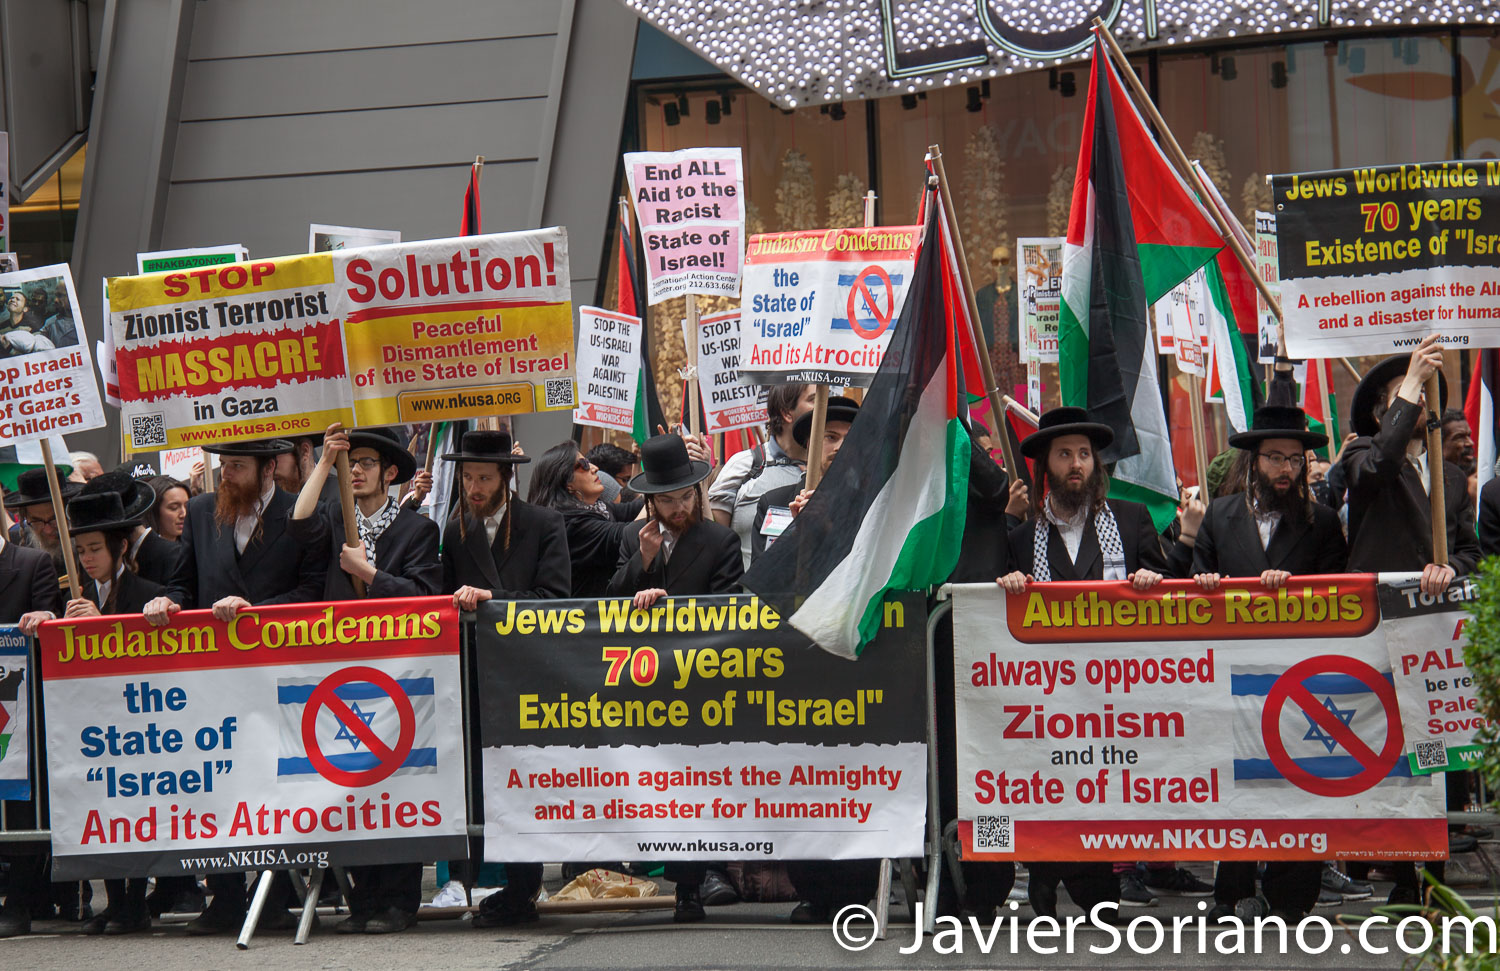 5/18/2018. New York City - Jews in Times Square supporting Palestine. Photo by Javier Soriano/www.JavierSoriano.com